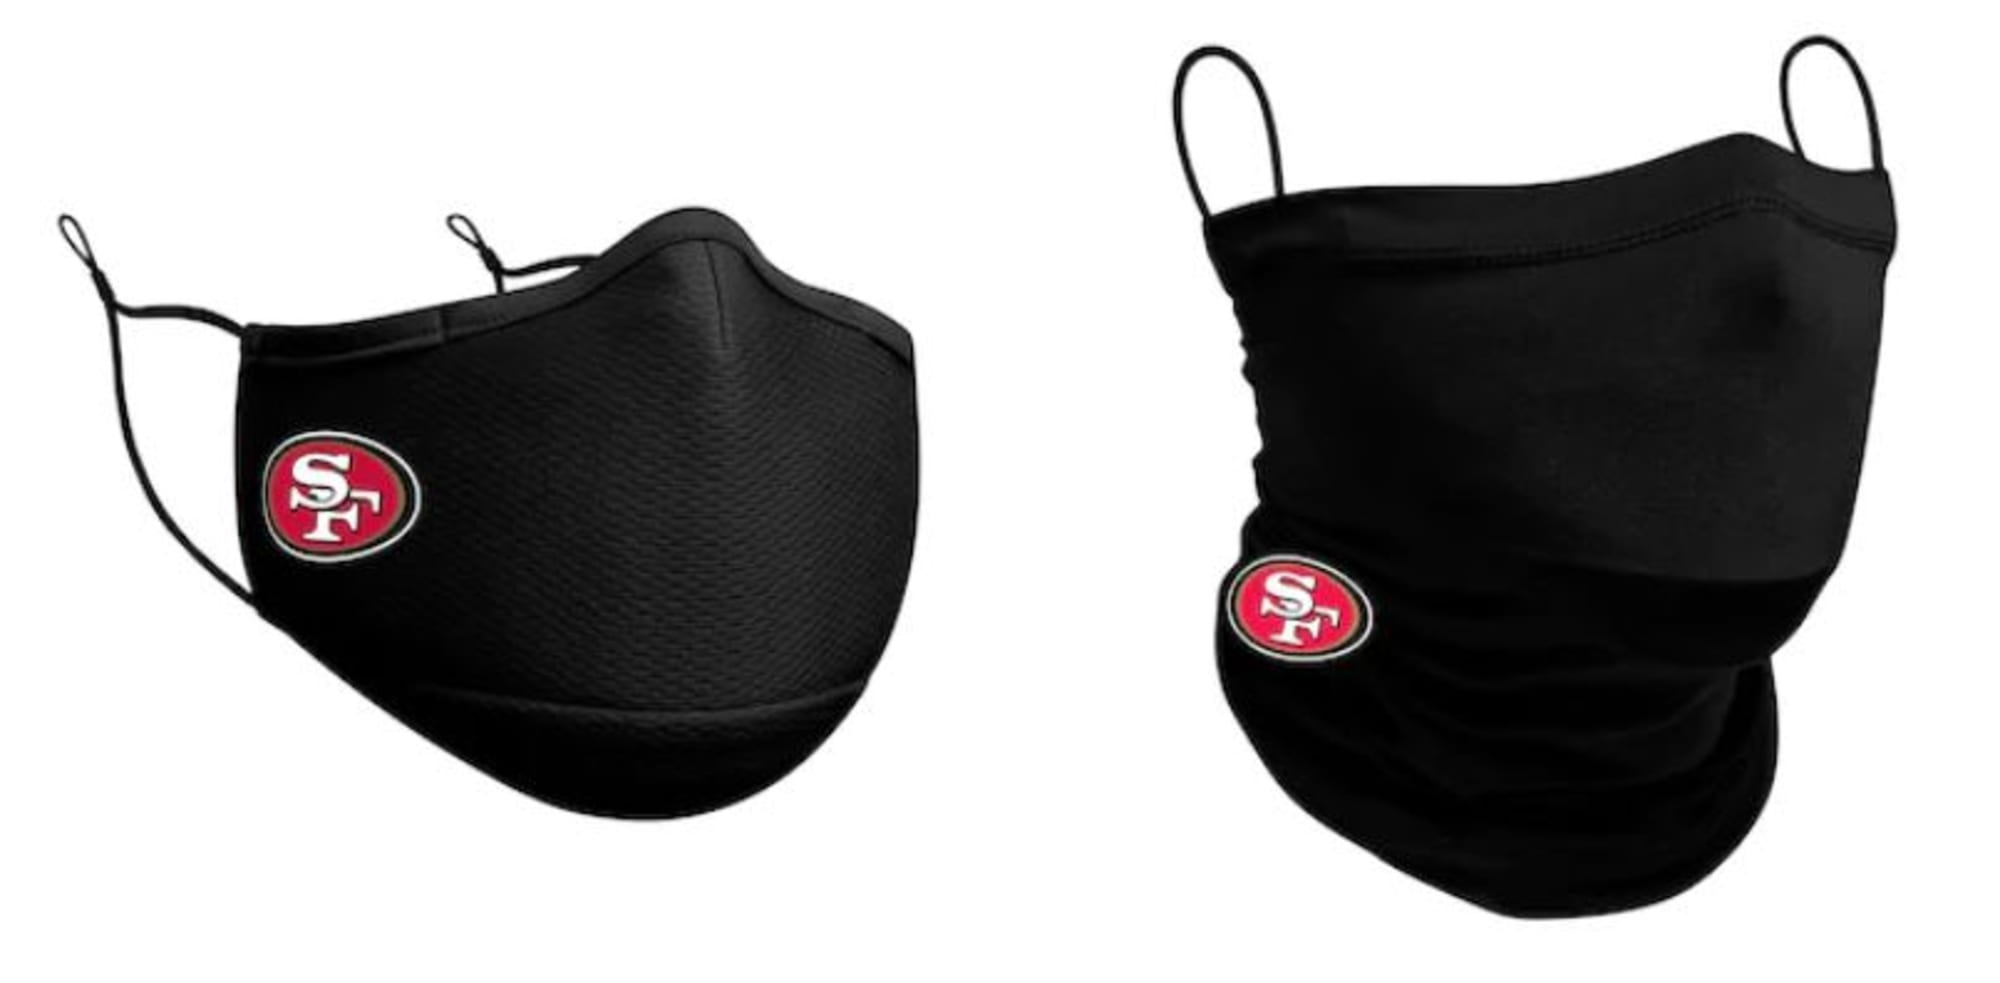 San Francisco 49ers: Get your official on-field New Era face coverings now